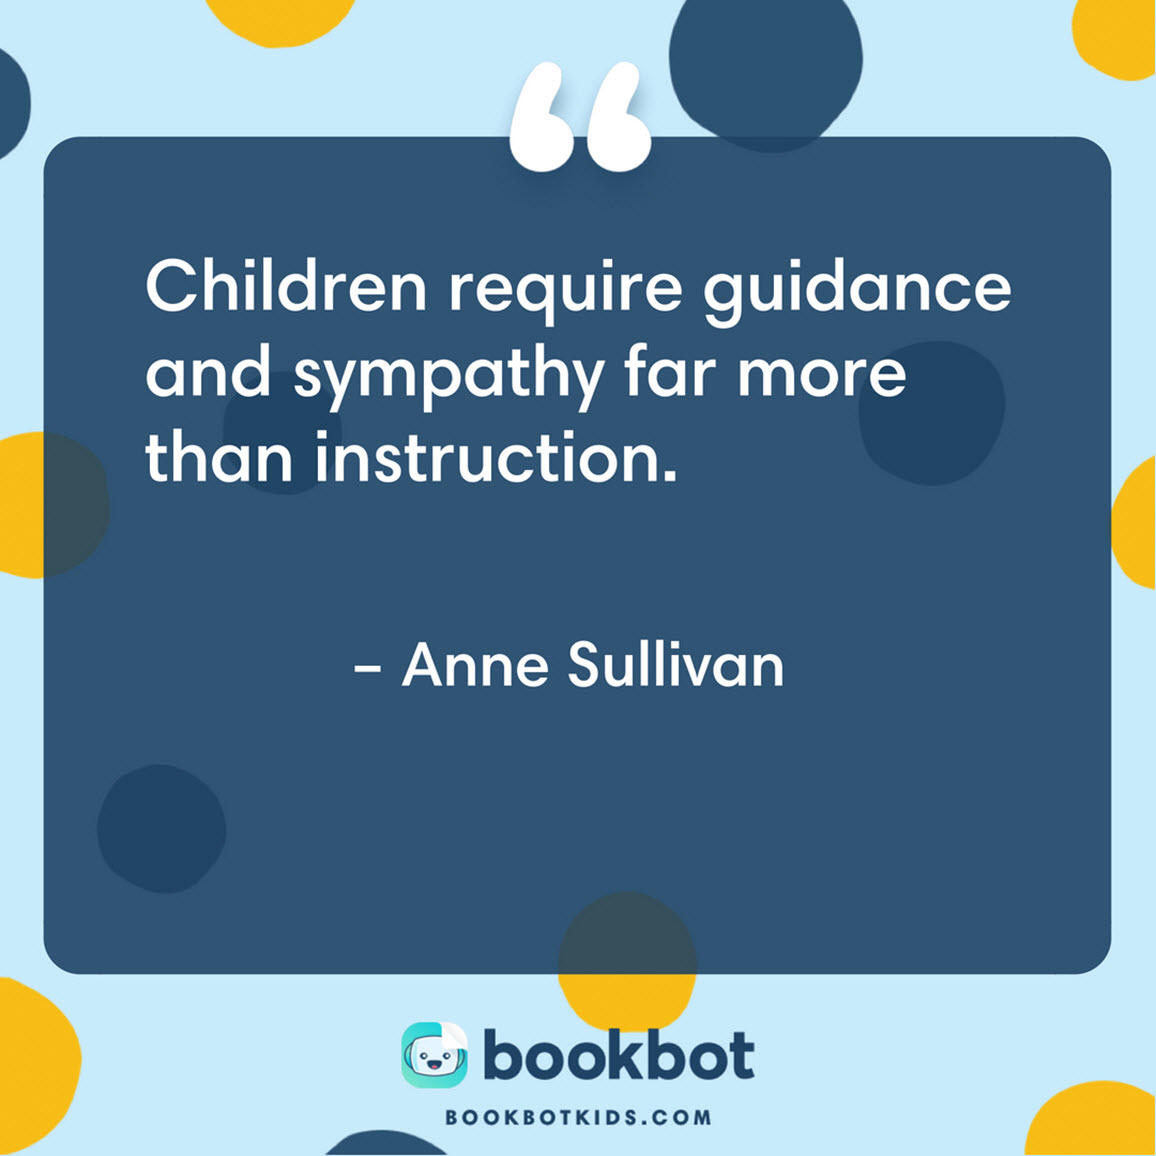 Children require guidance and sympathy far more than instruction. – Anne Sullivan